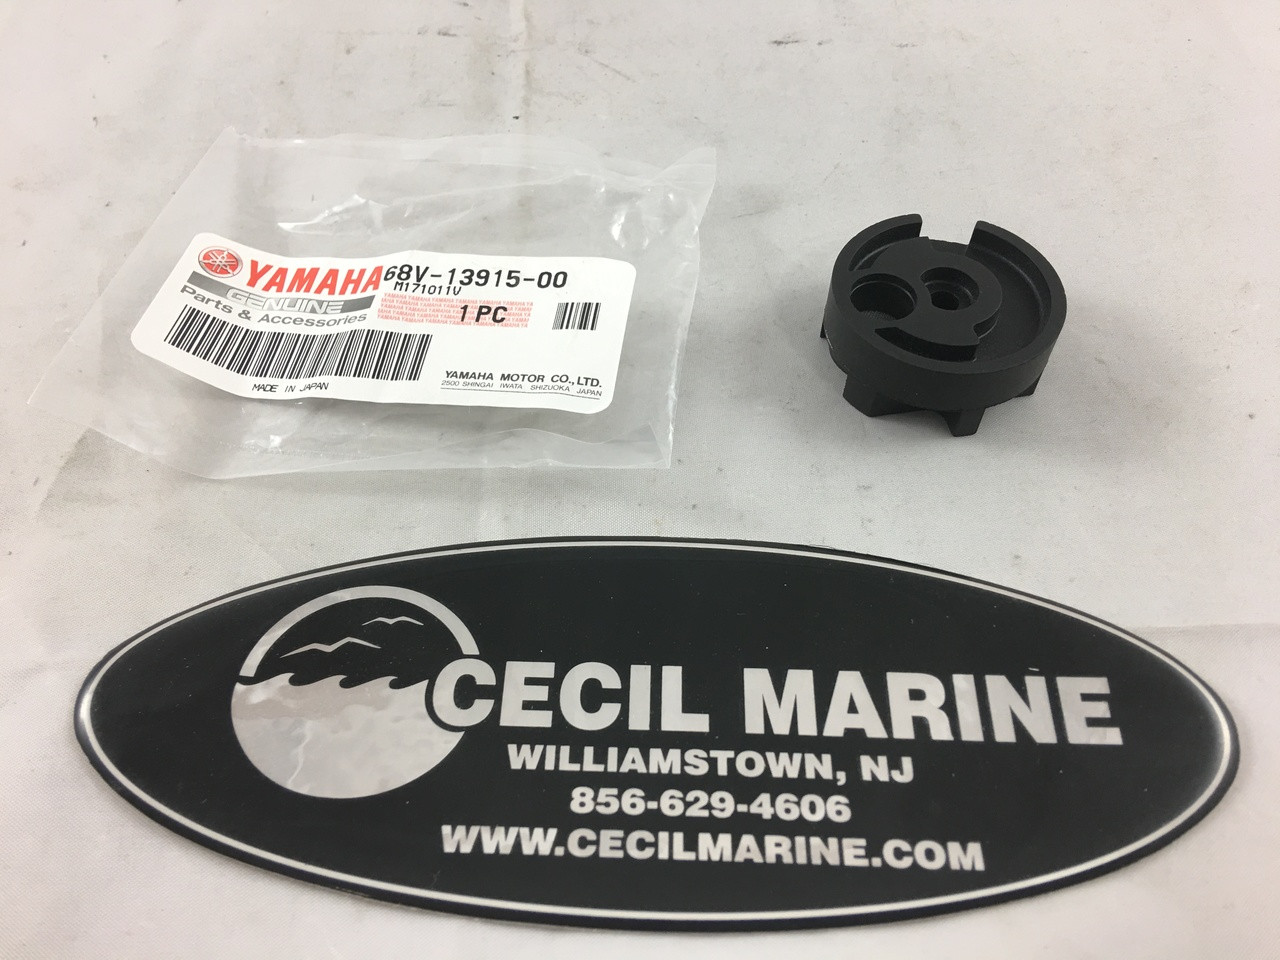 39 45 yamaha fuel filter 68v 13915 00 in stock ready to ship cecil marine [ 1280 x 960 Pixel ]